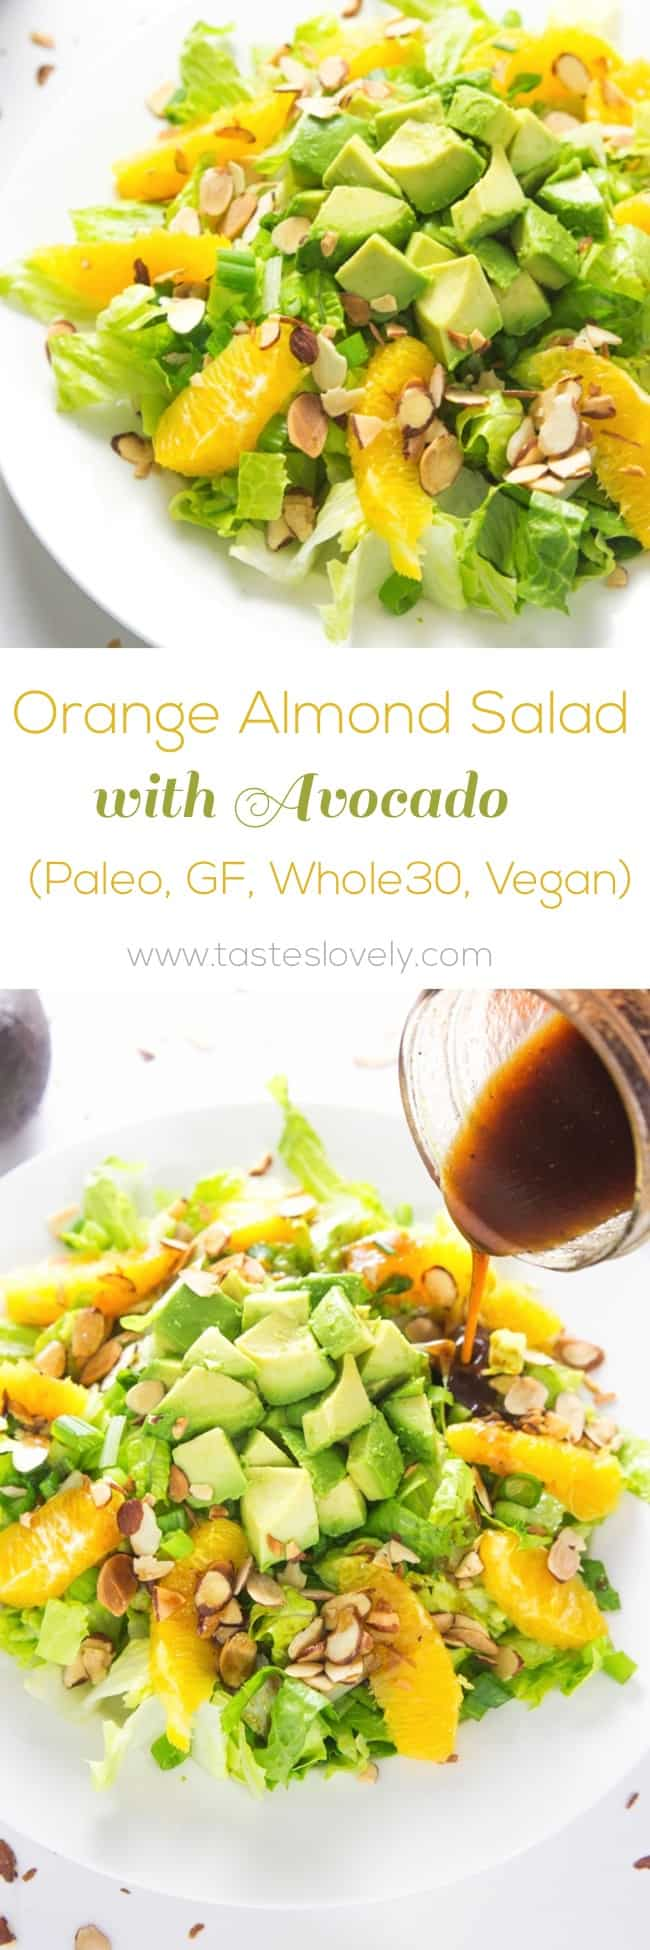 Orange Almond Salad with Avocado - my favorite lunch salad! #paleo #glutenfree #whole30 #vegan